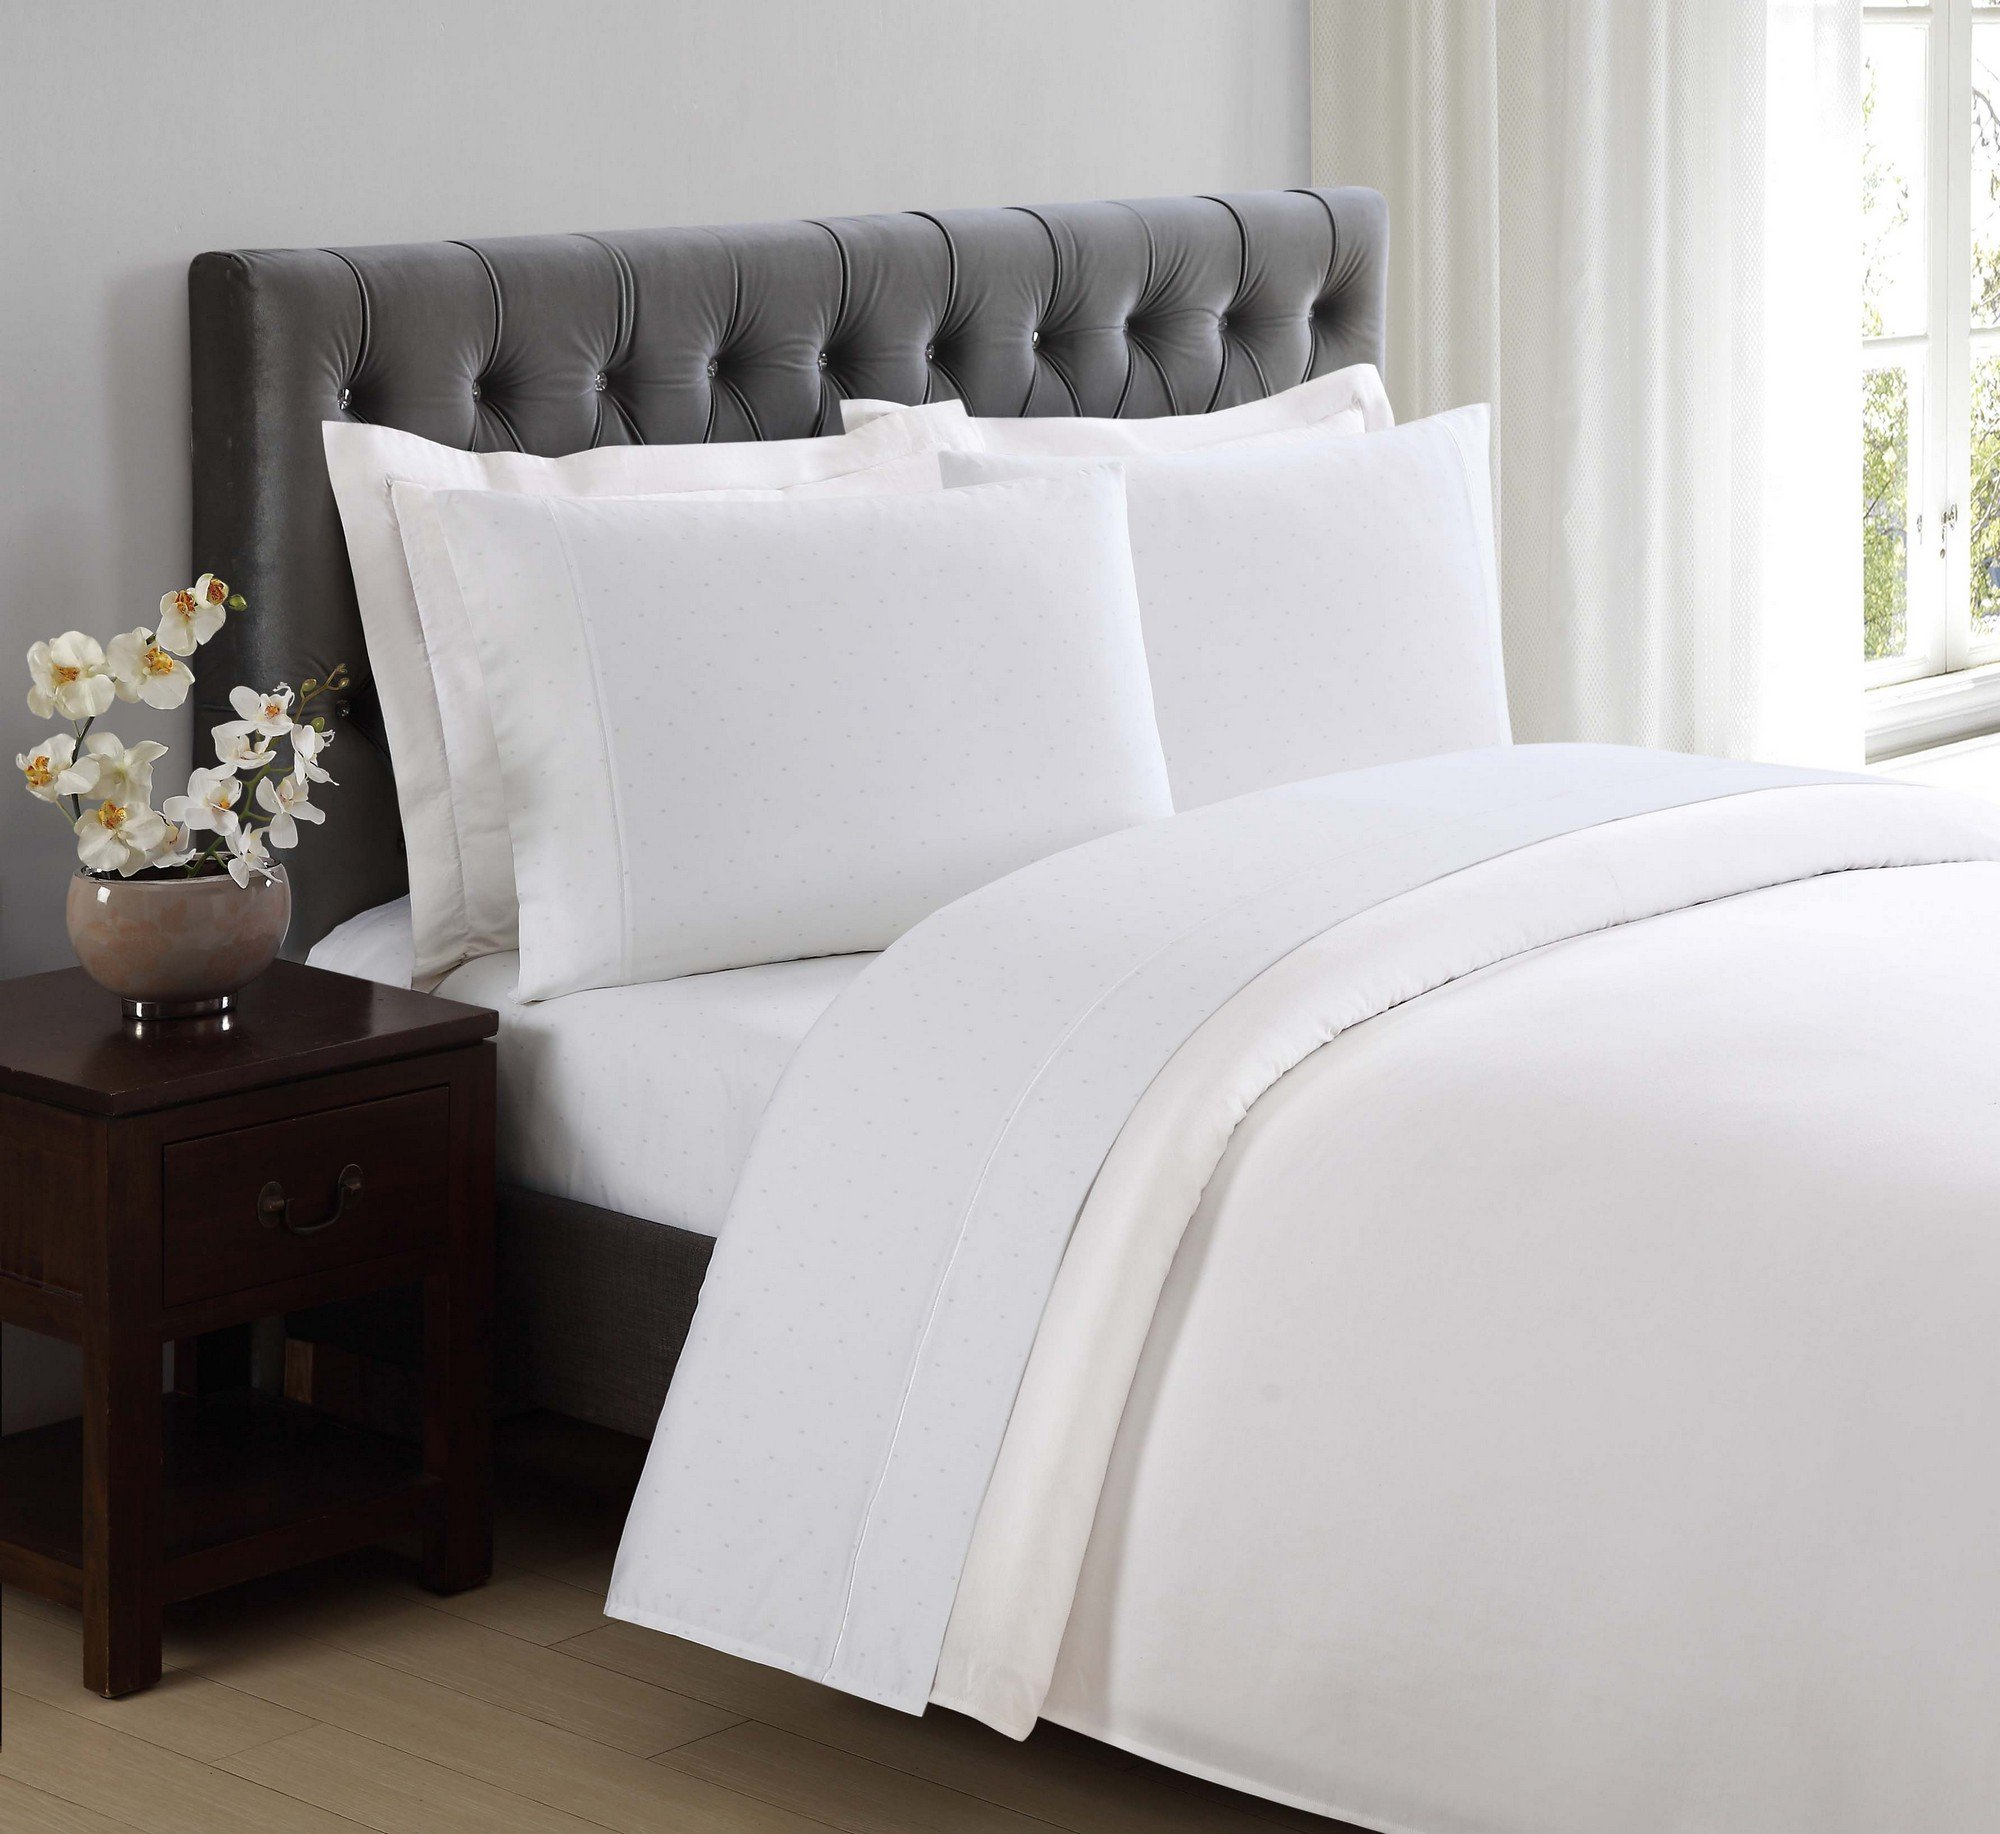 Charisma 310 Thread Count Classic Dot Cotton Sateen King Pillowcase Pair in Bright White by Charisma